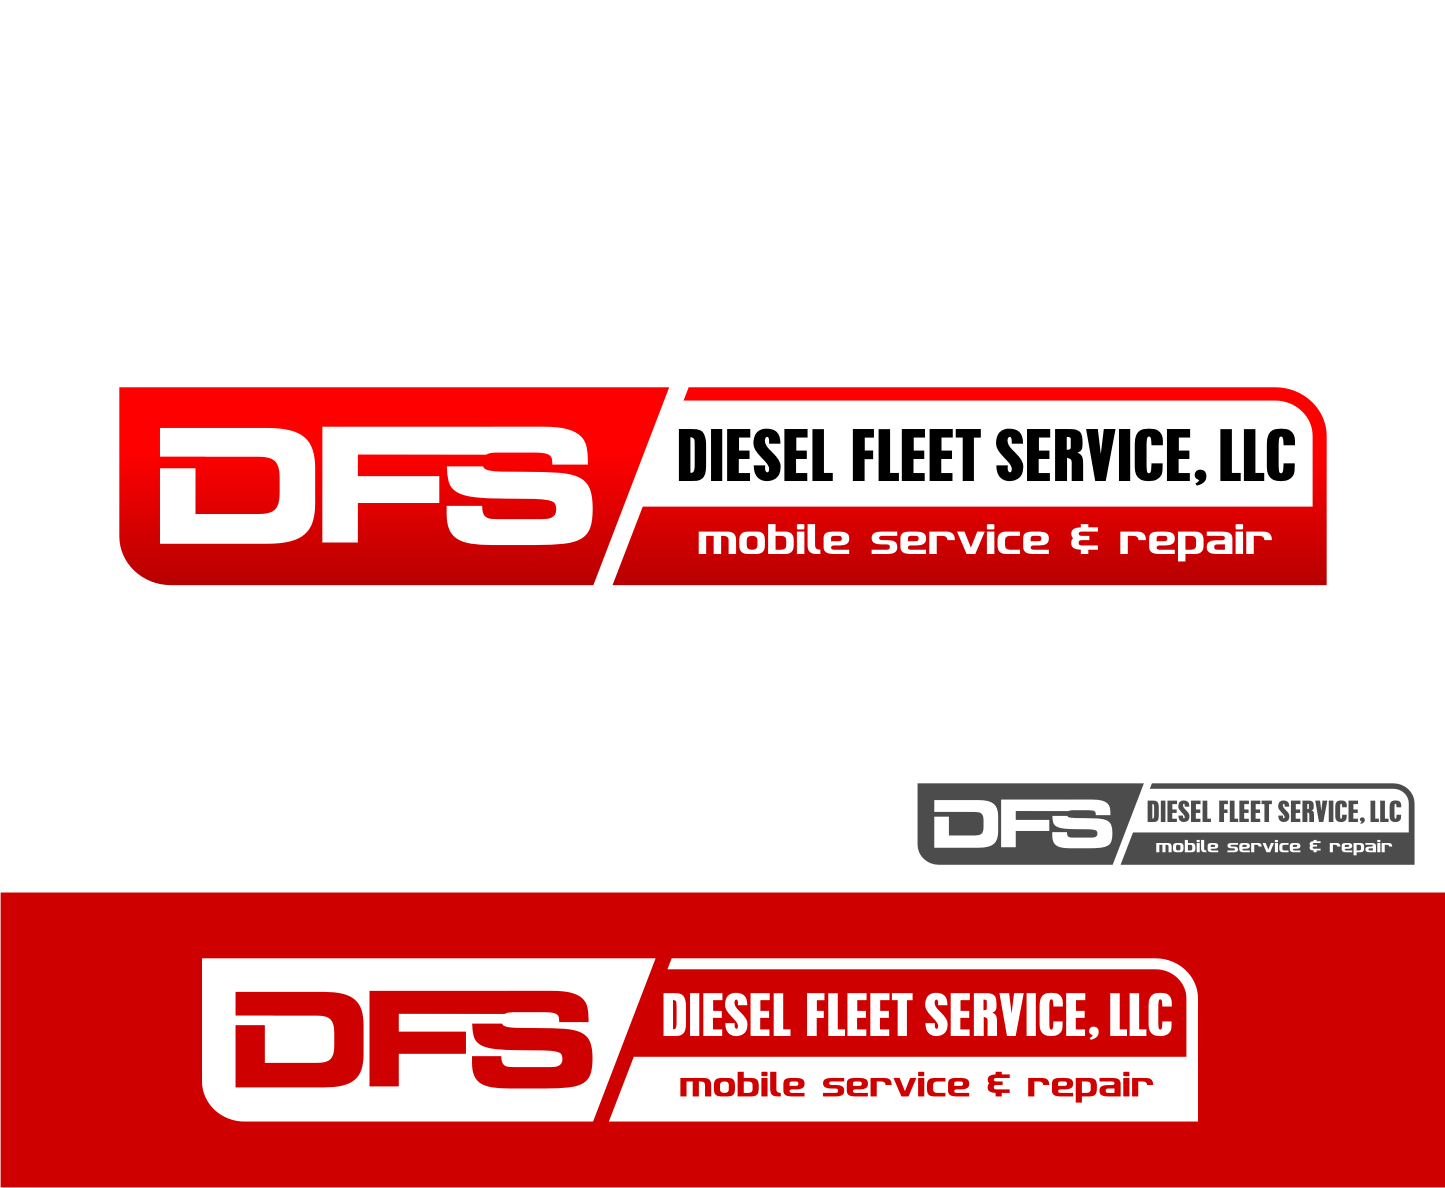 Logo Design by Tille Famz - Entry No. 84 in the Logo Design Contest Artistic Logo Design for Diesel Fleet Service, LLC.